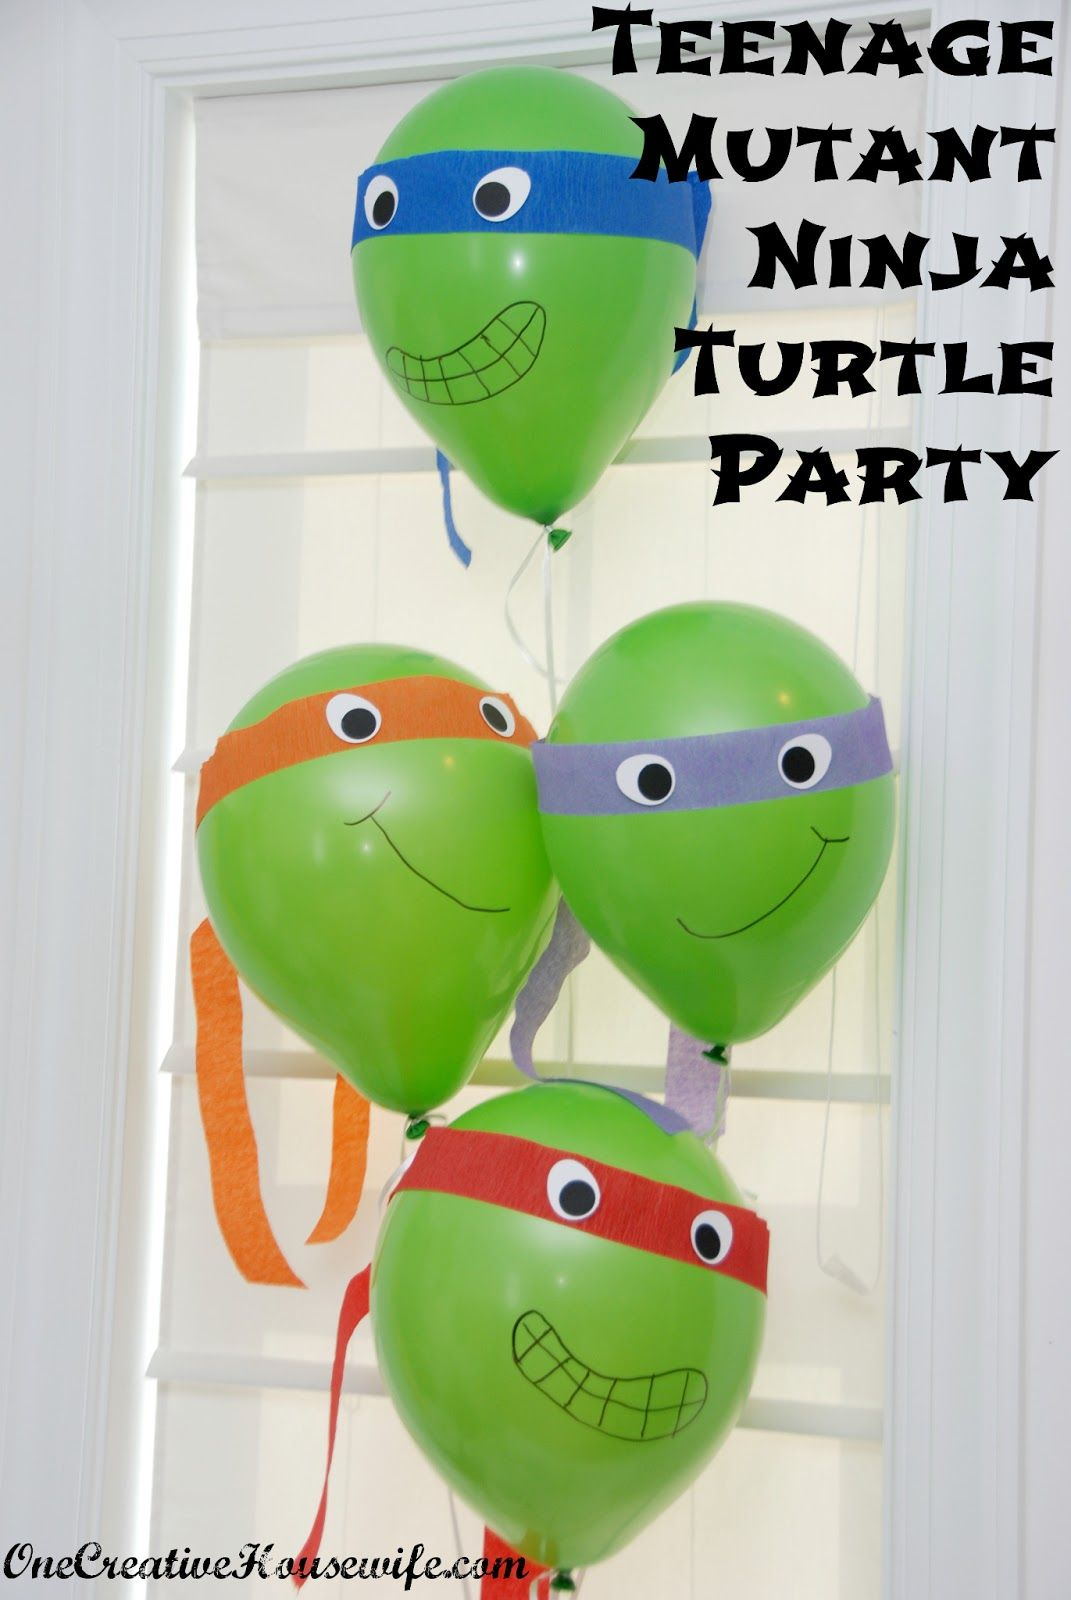 Tmnt birthday party ideas homemade housewife for Tmnt decorations